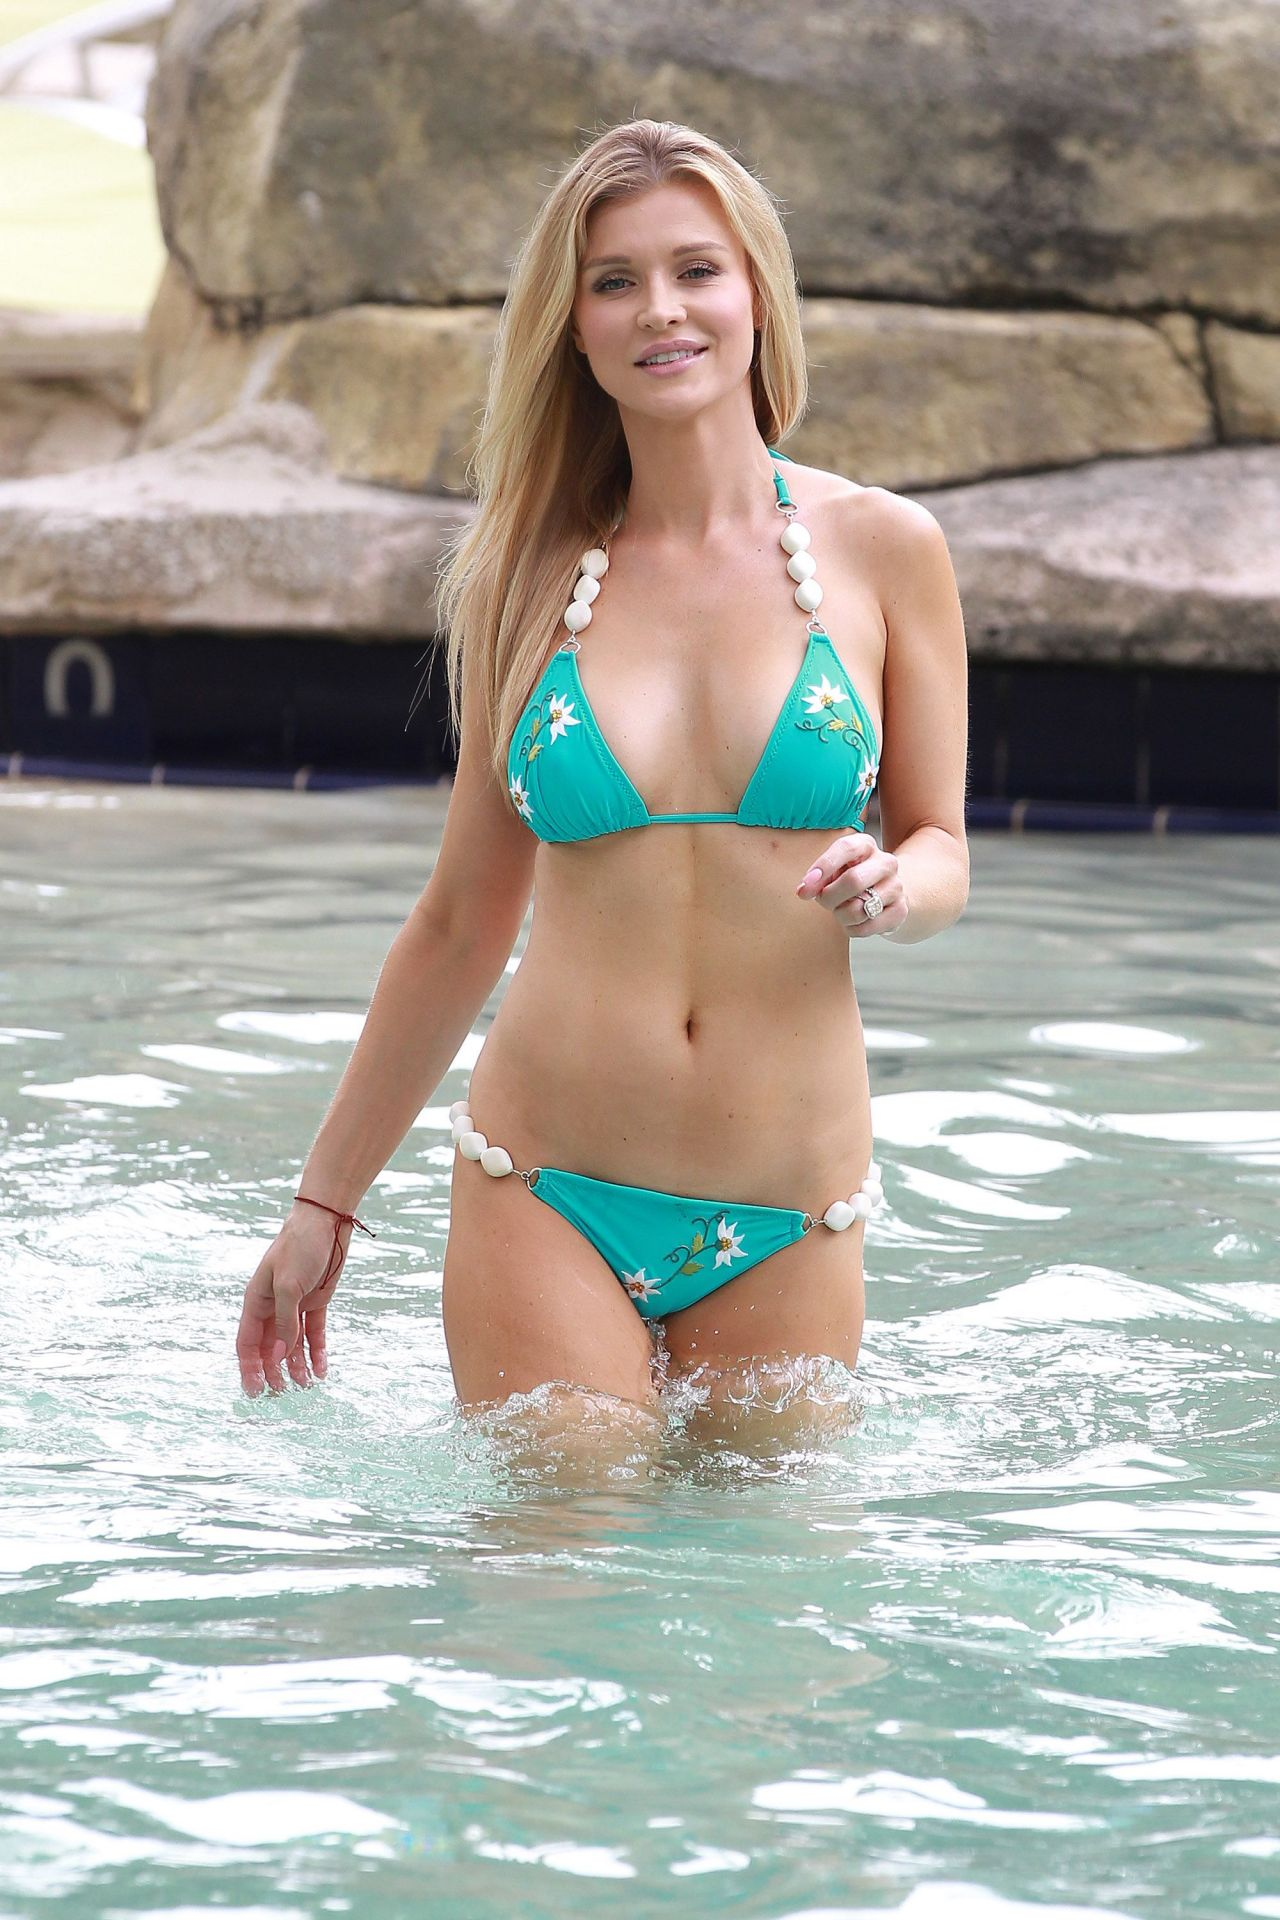 Joanna Krupa Bikini Photos - at a pool in Fort Lauderdale - August 2014